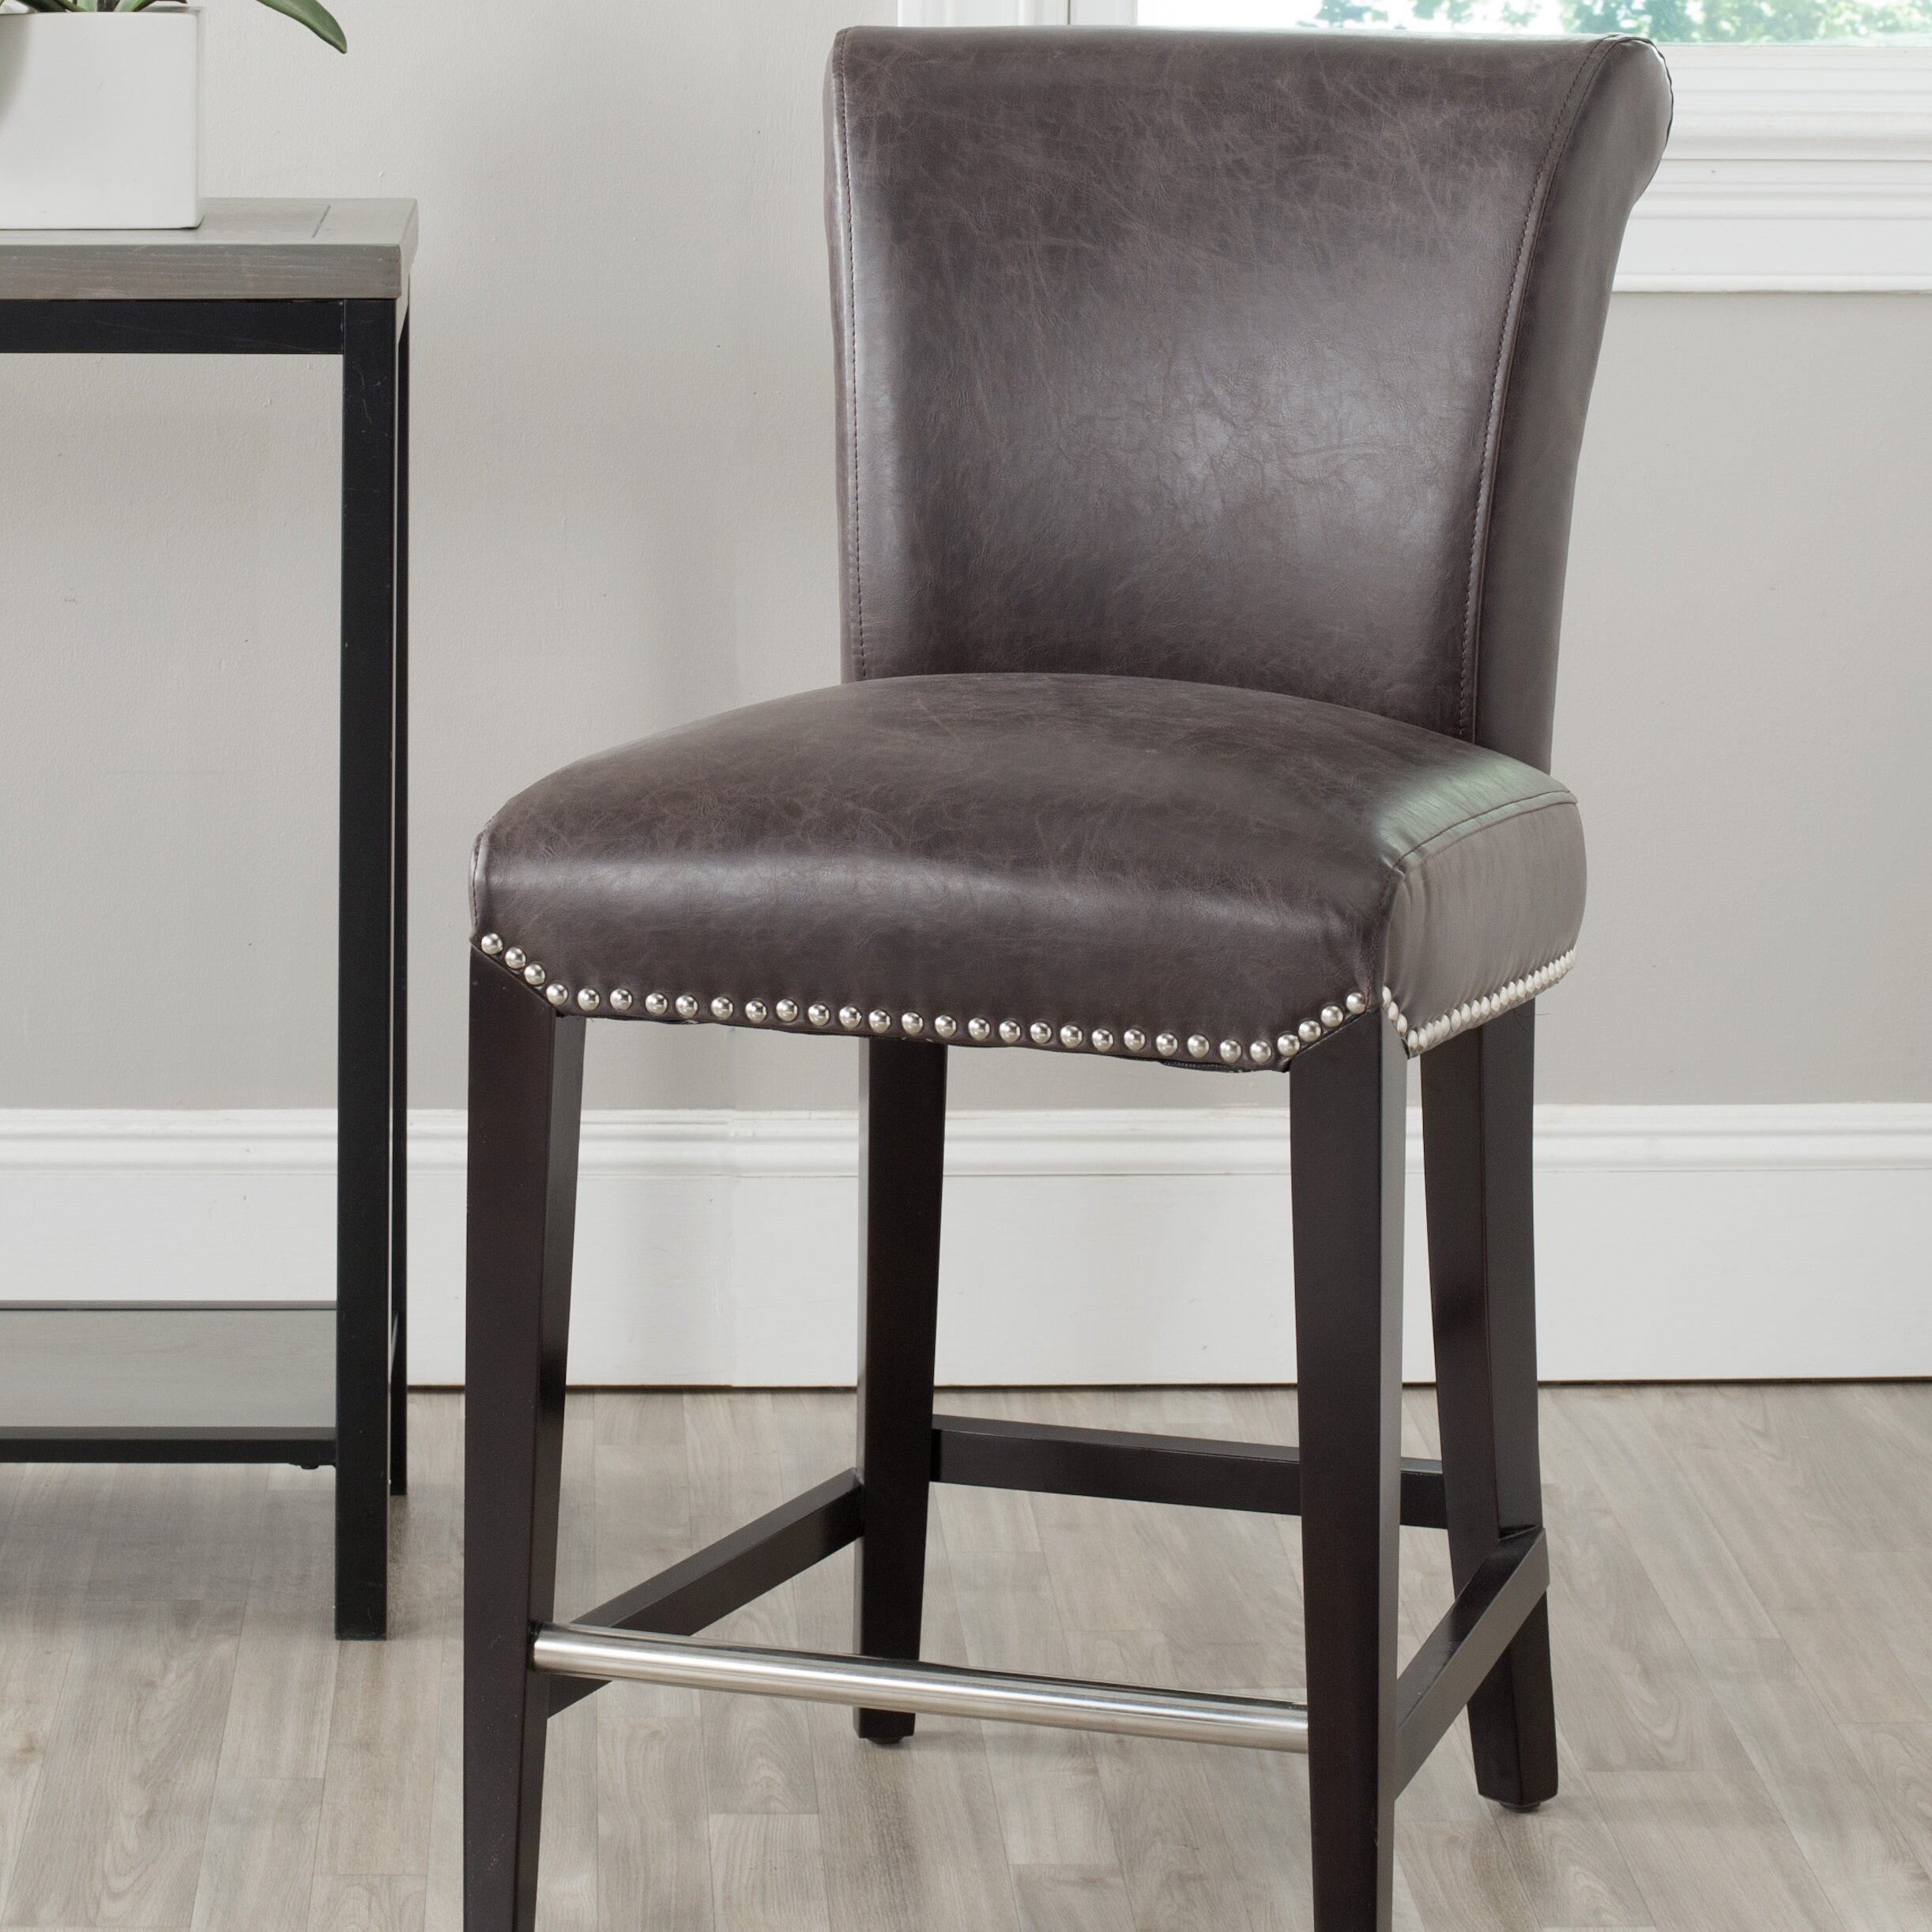 Darby Home Co Adamsville 26quot Bar Stool amp Reviews Wayfair : Darby Home Co Adamsville 26 Bar Stool DRBC1450 from www.wayfair.com size 2445 x 2445 jpeg 886kB